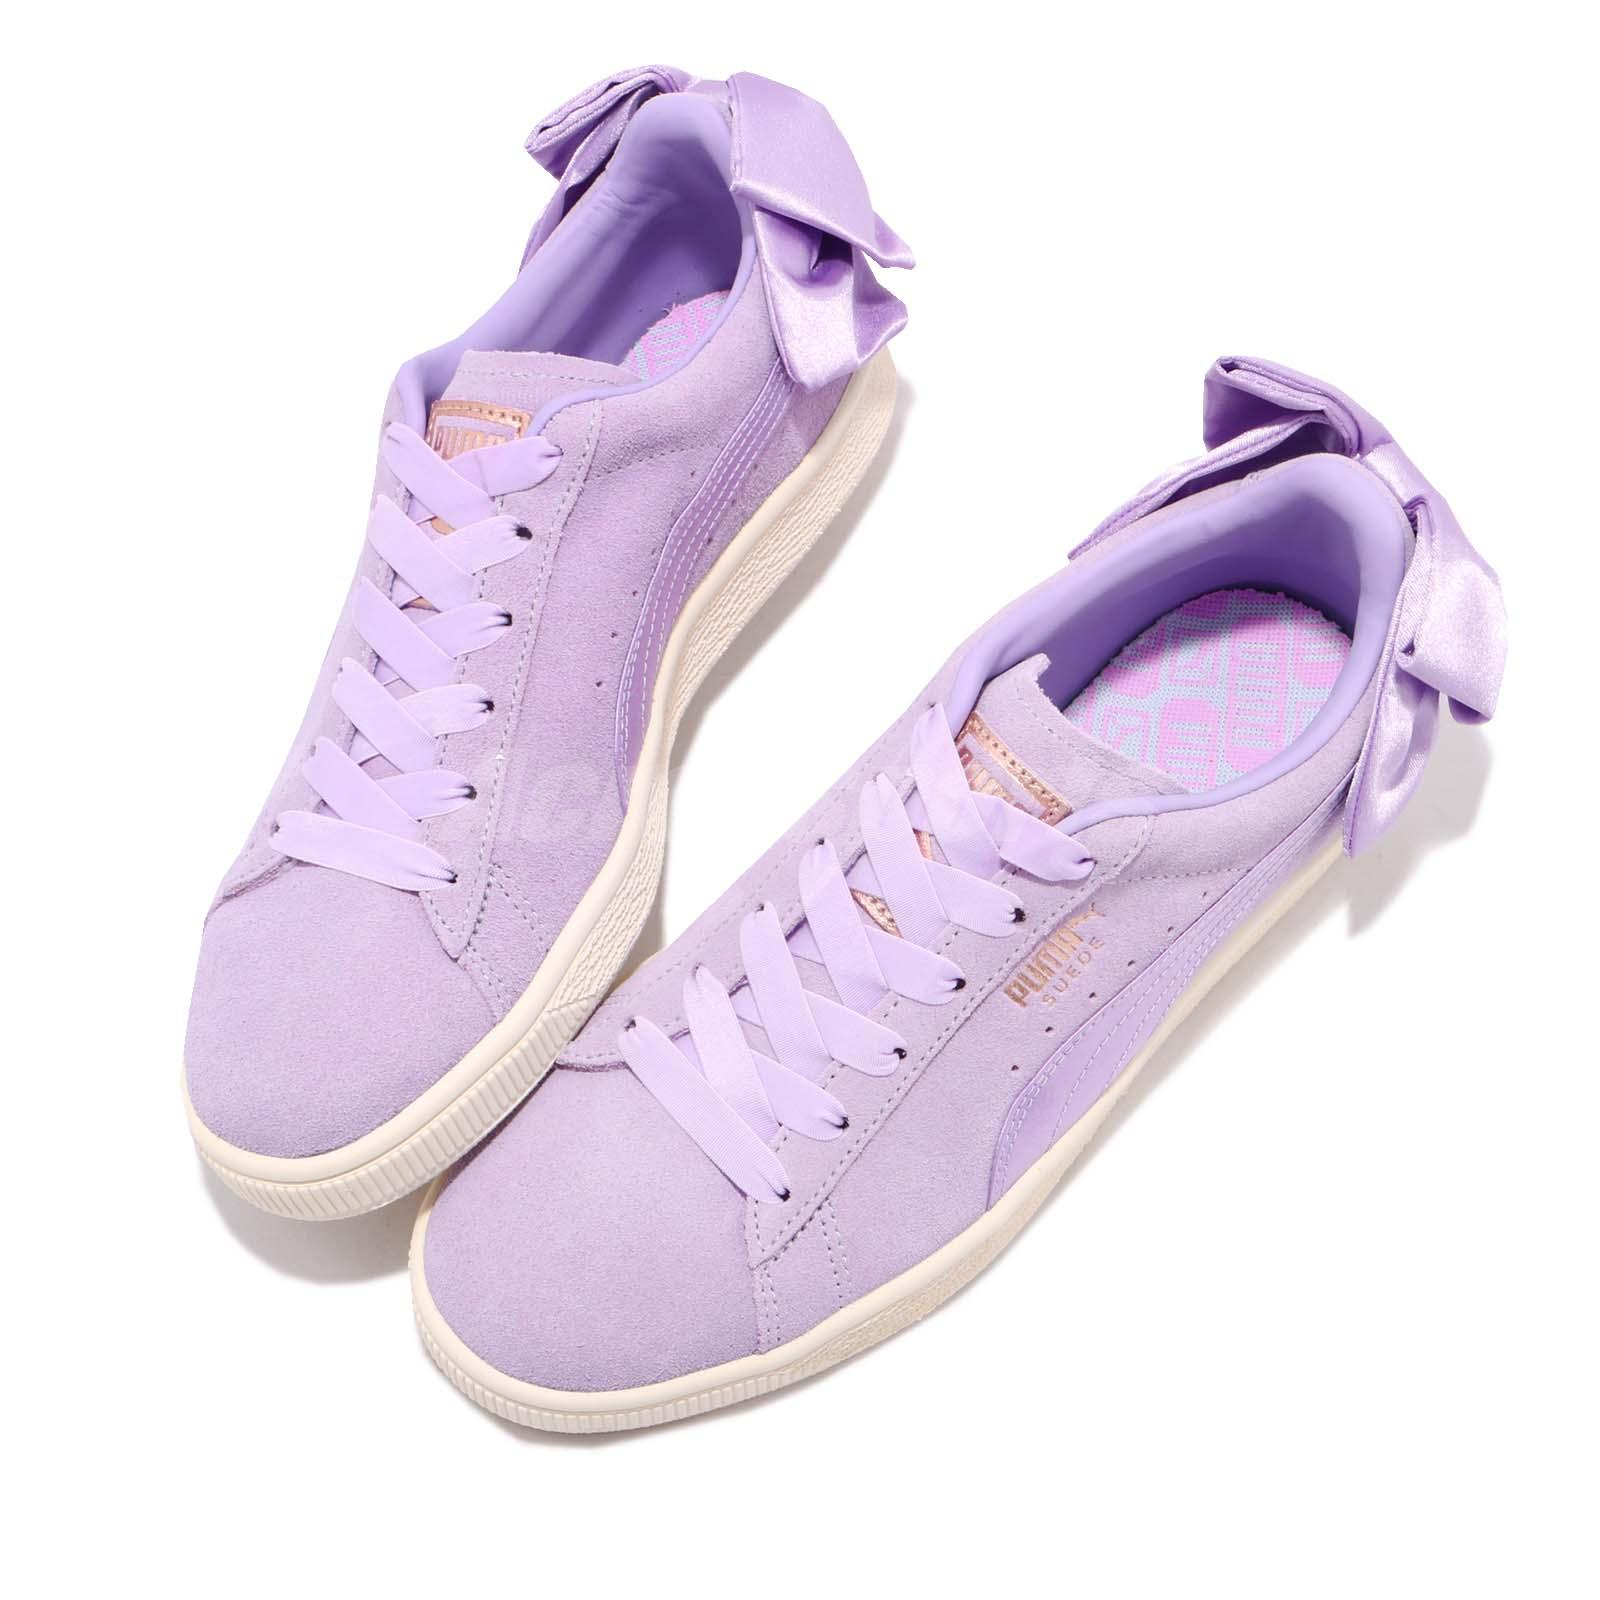 Puma Suede Bow W Chaussures Purple Rose NYXK8